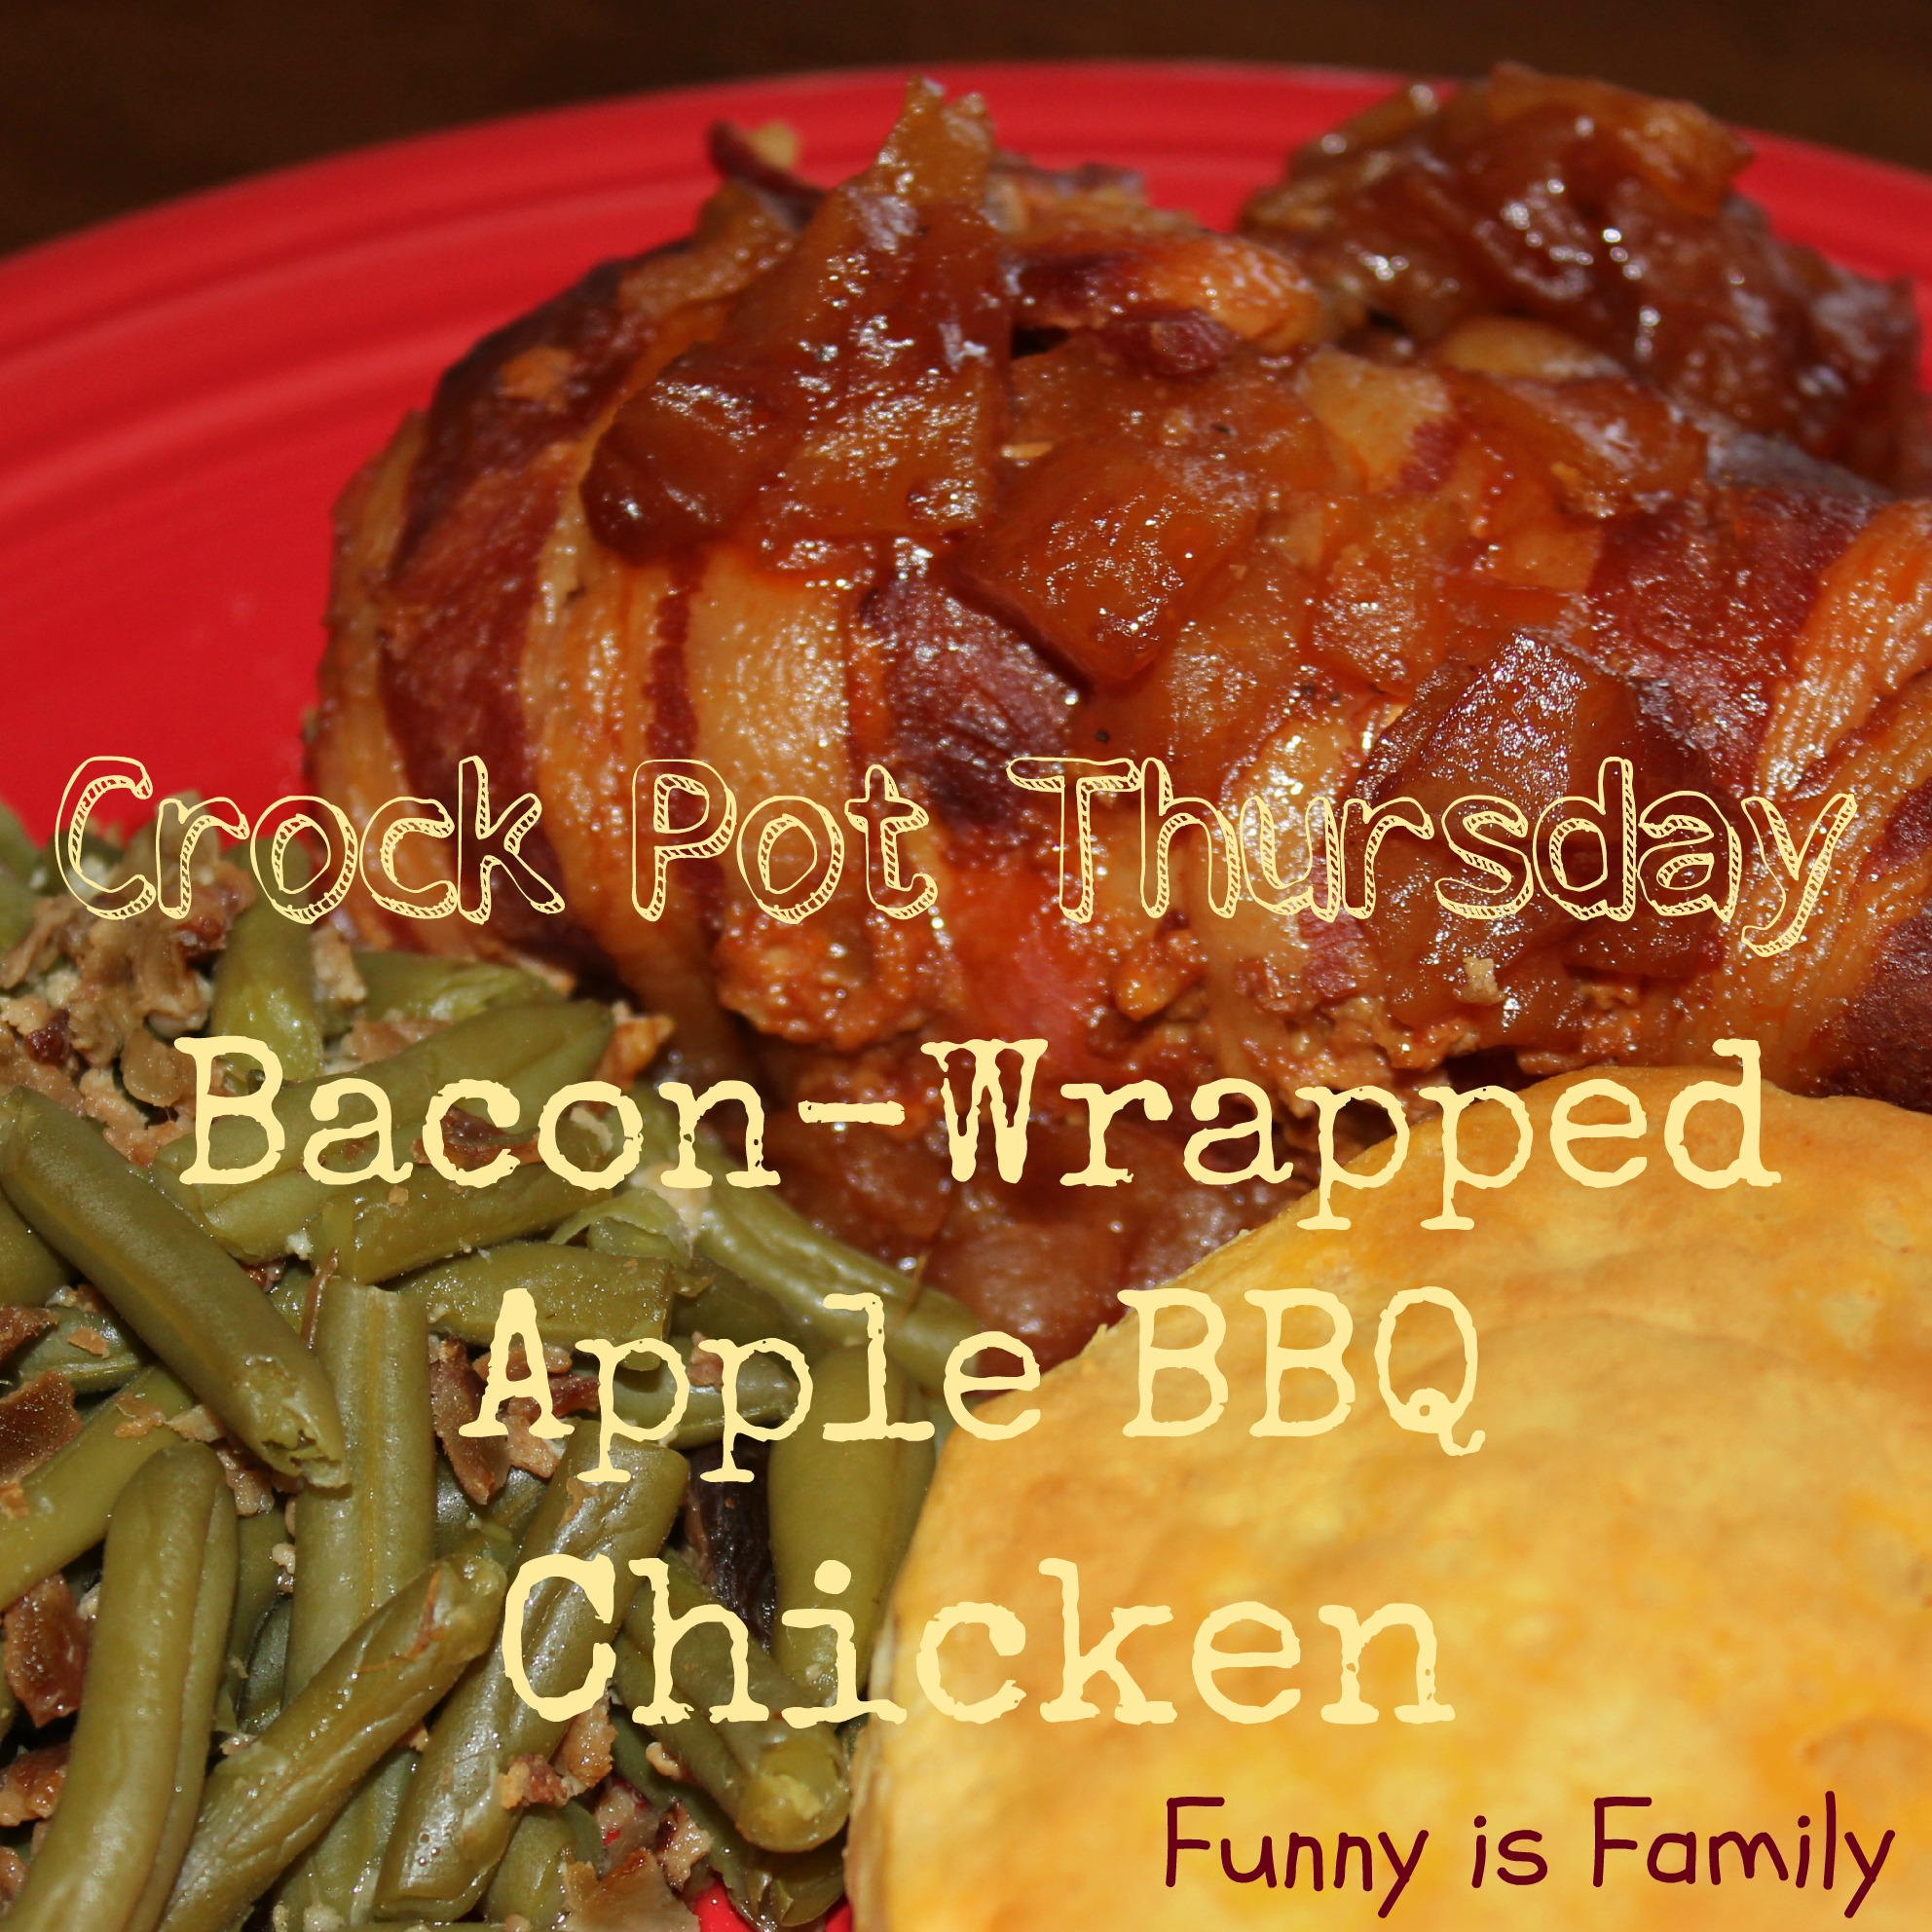 Crock Pot Thursday: Bacon-Wrapped Apple BBQ Chicken